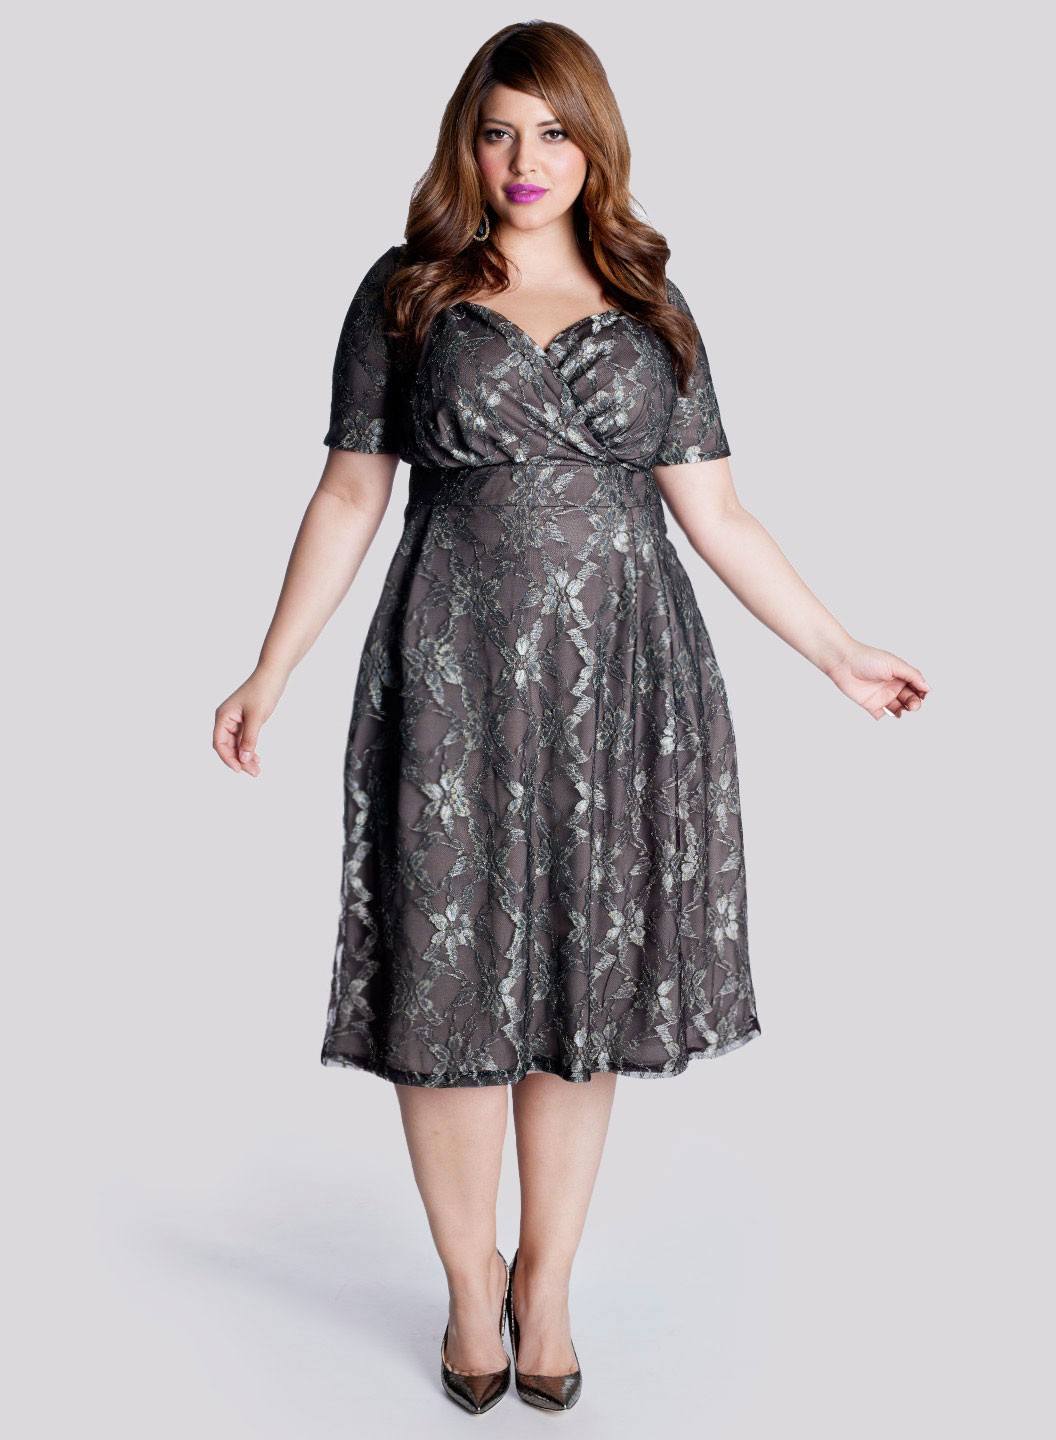 Plus Size Green Lace Dress : Make You Look Thinner - Dresses Ask